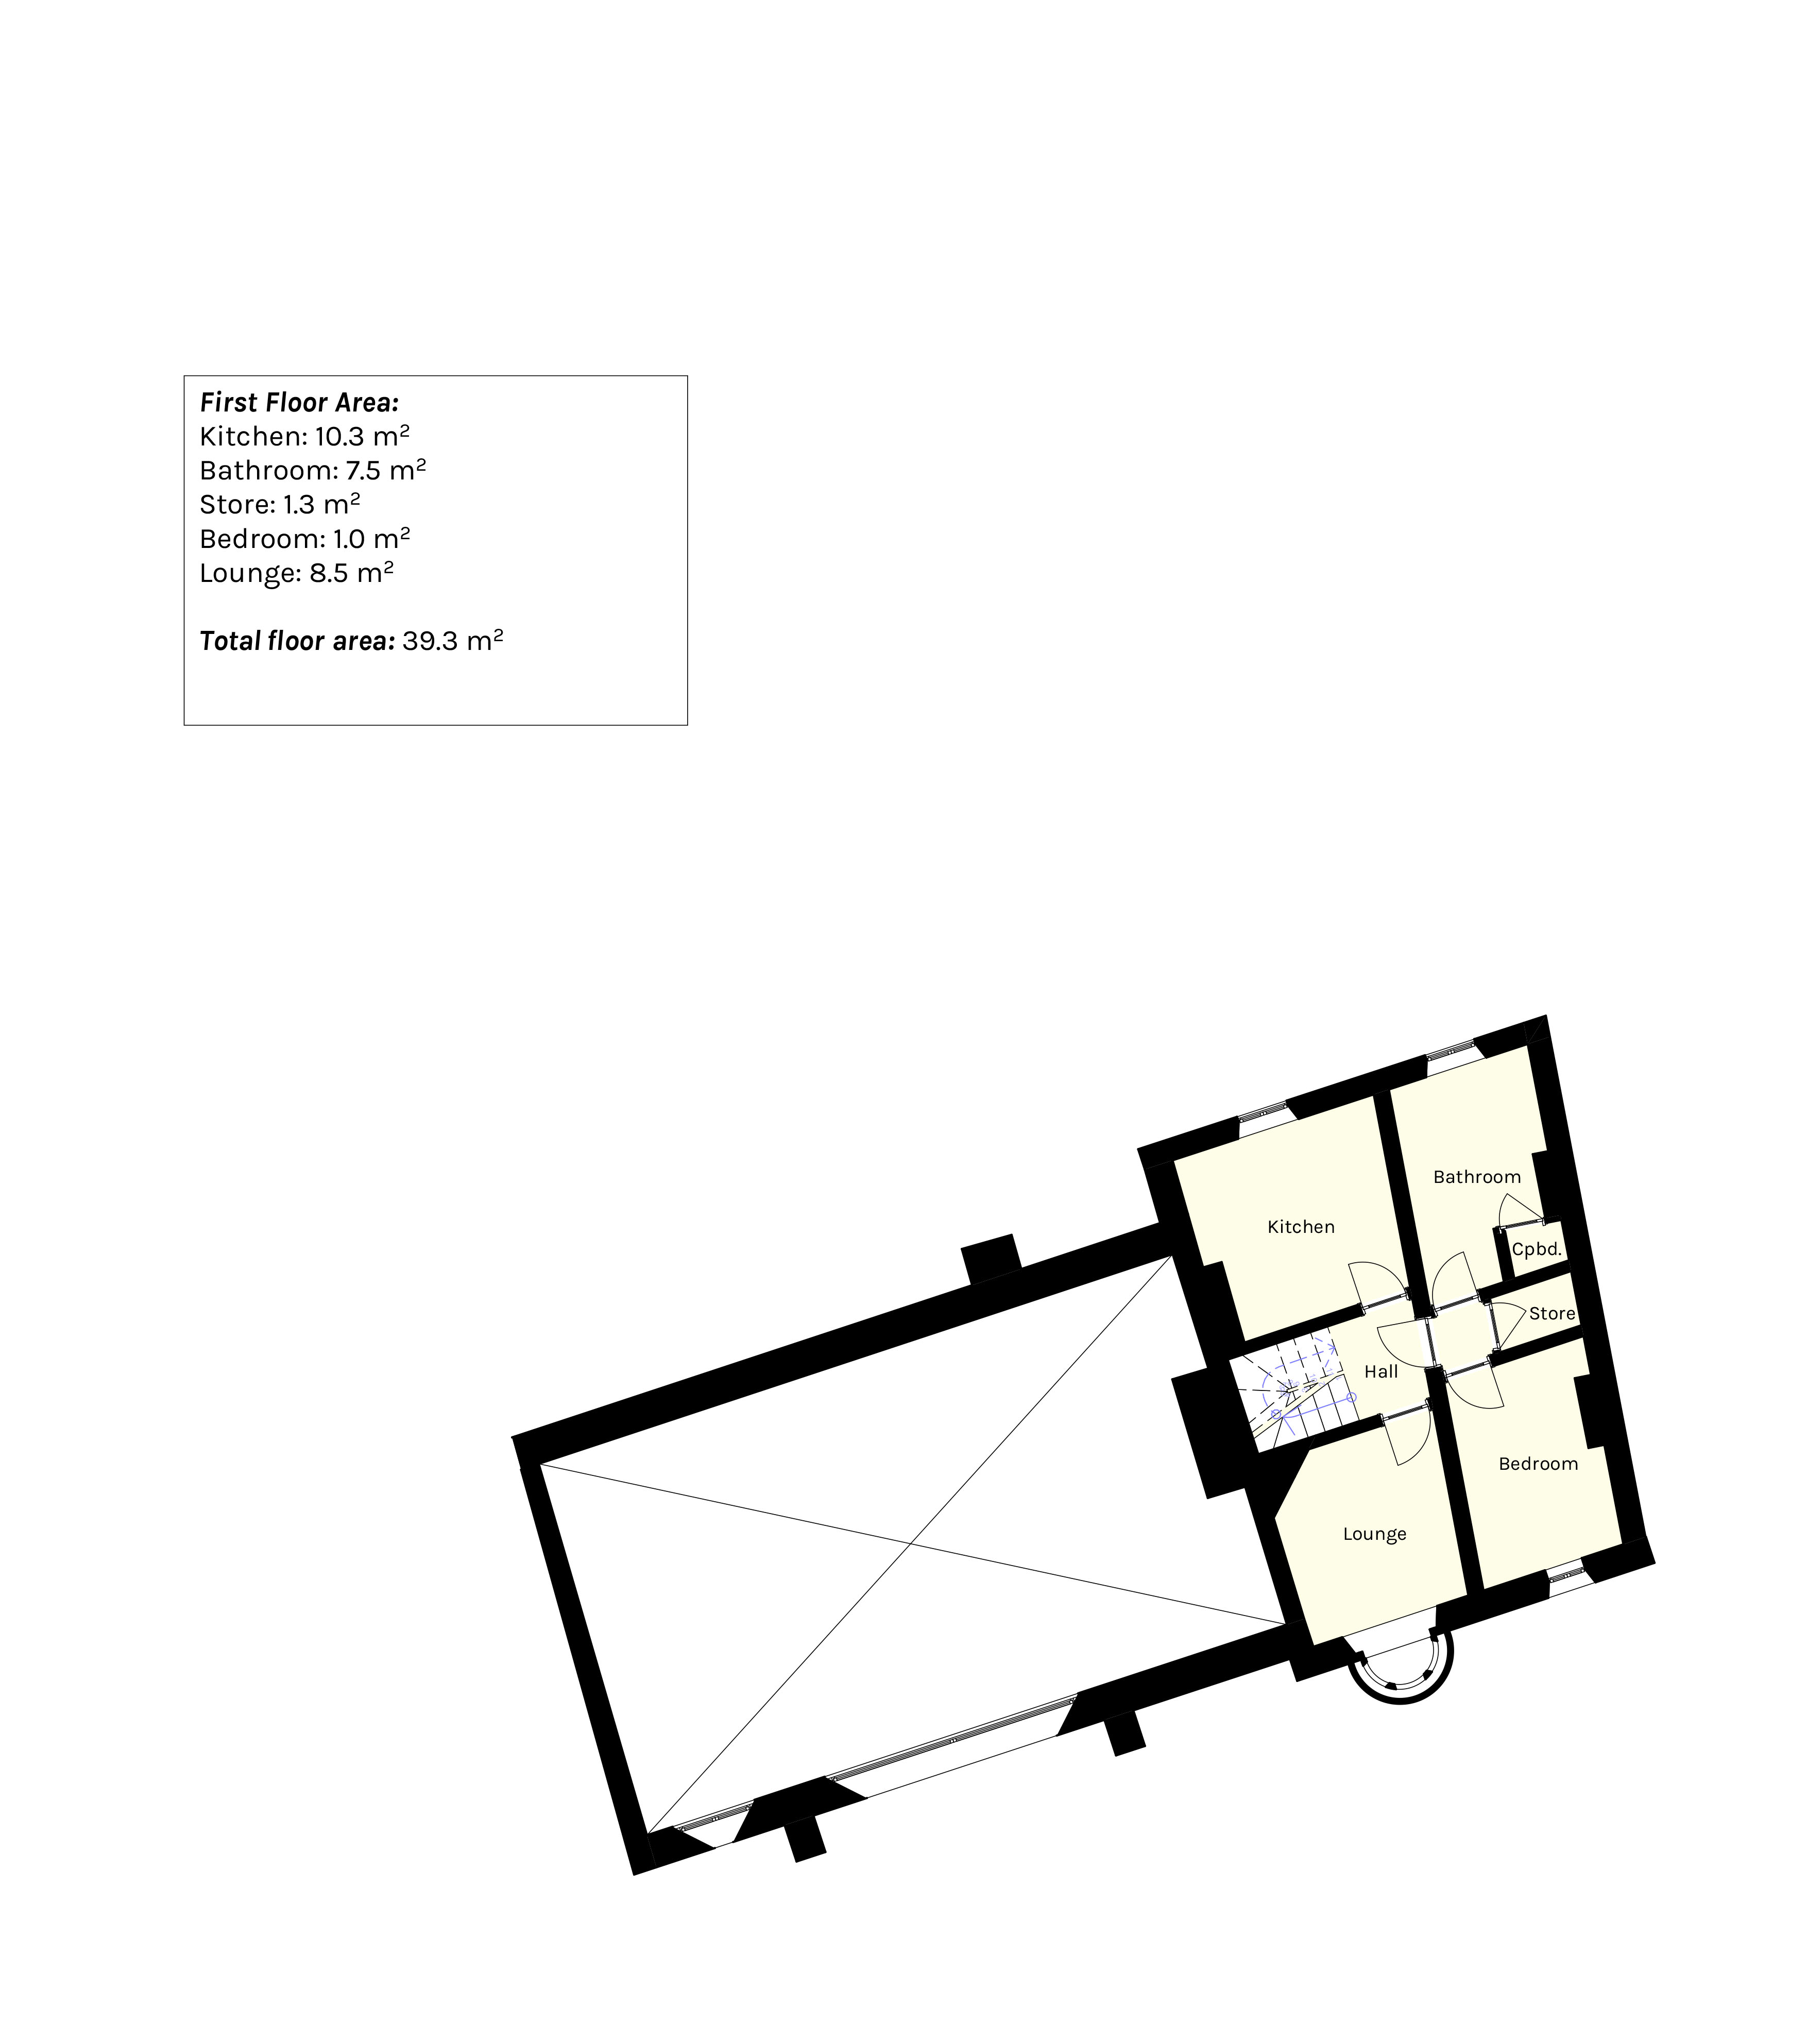 Existing first floor plan of former TSB bank